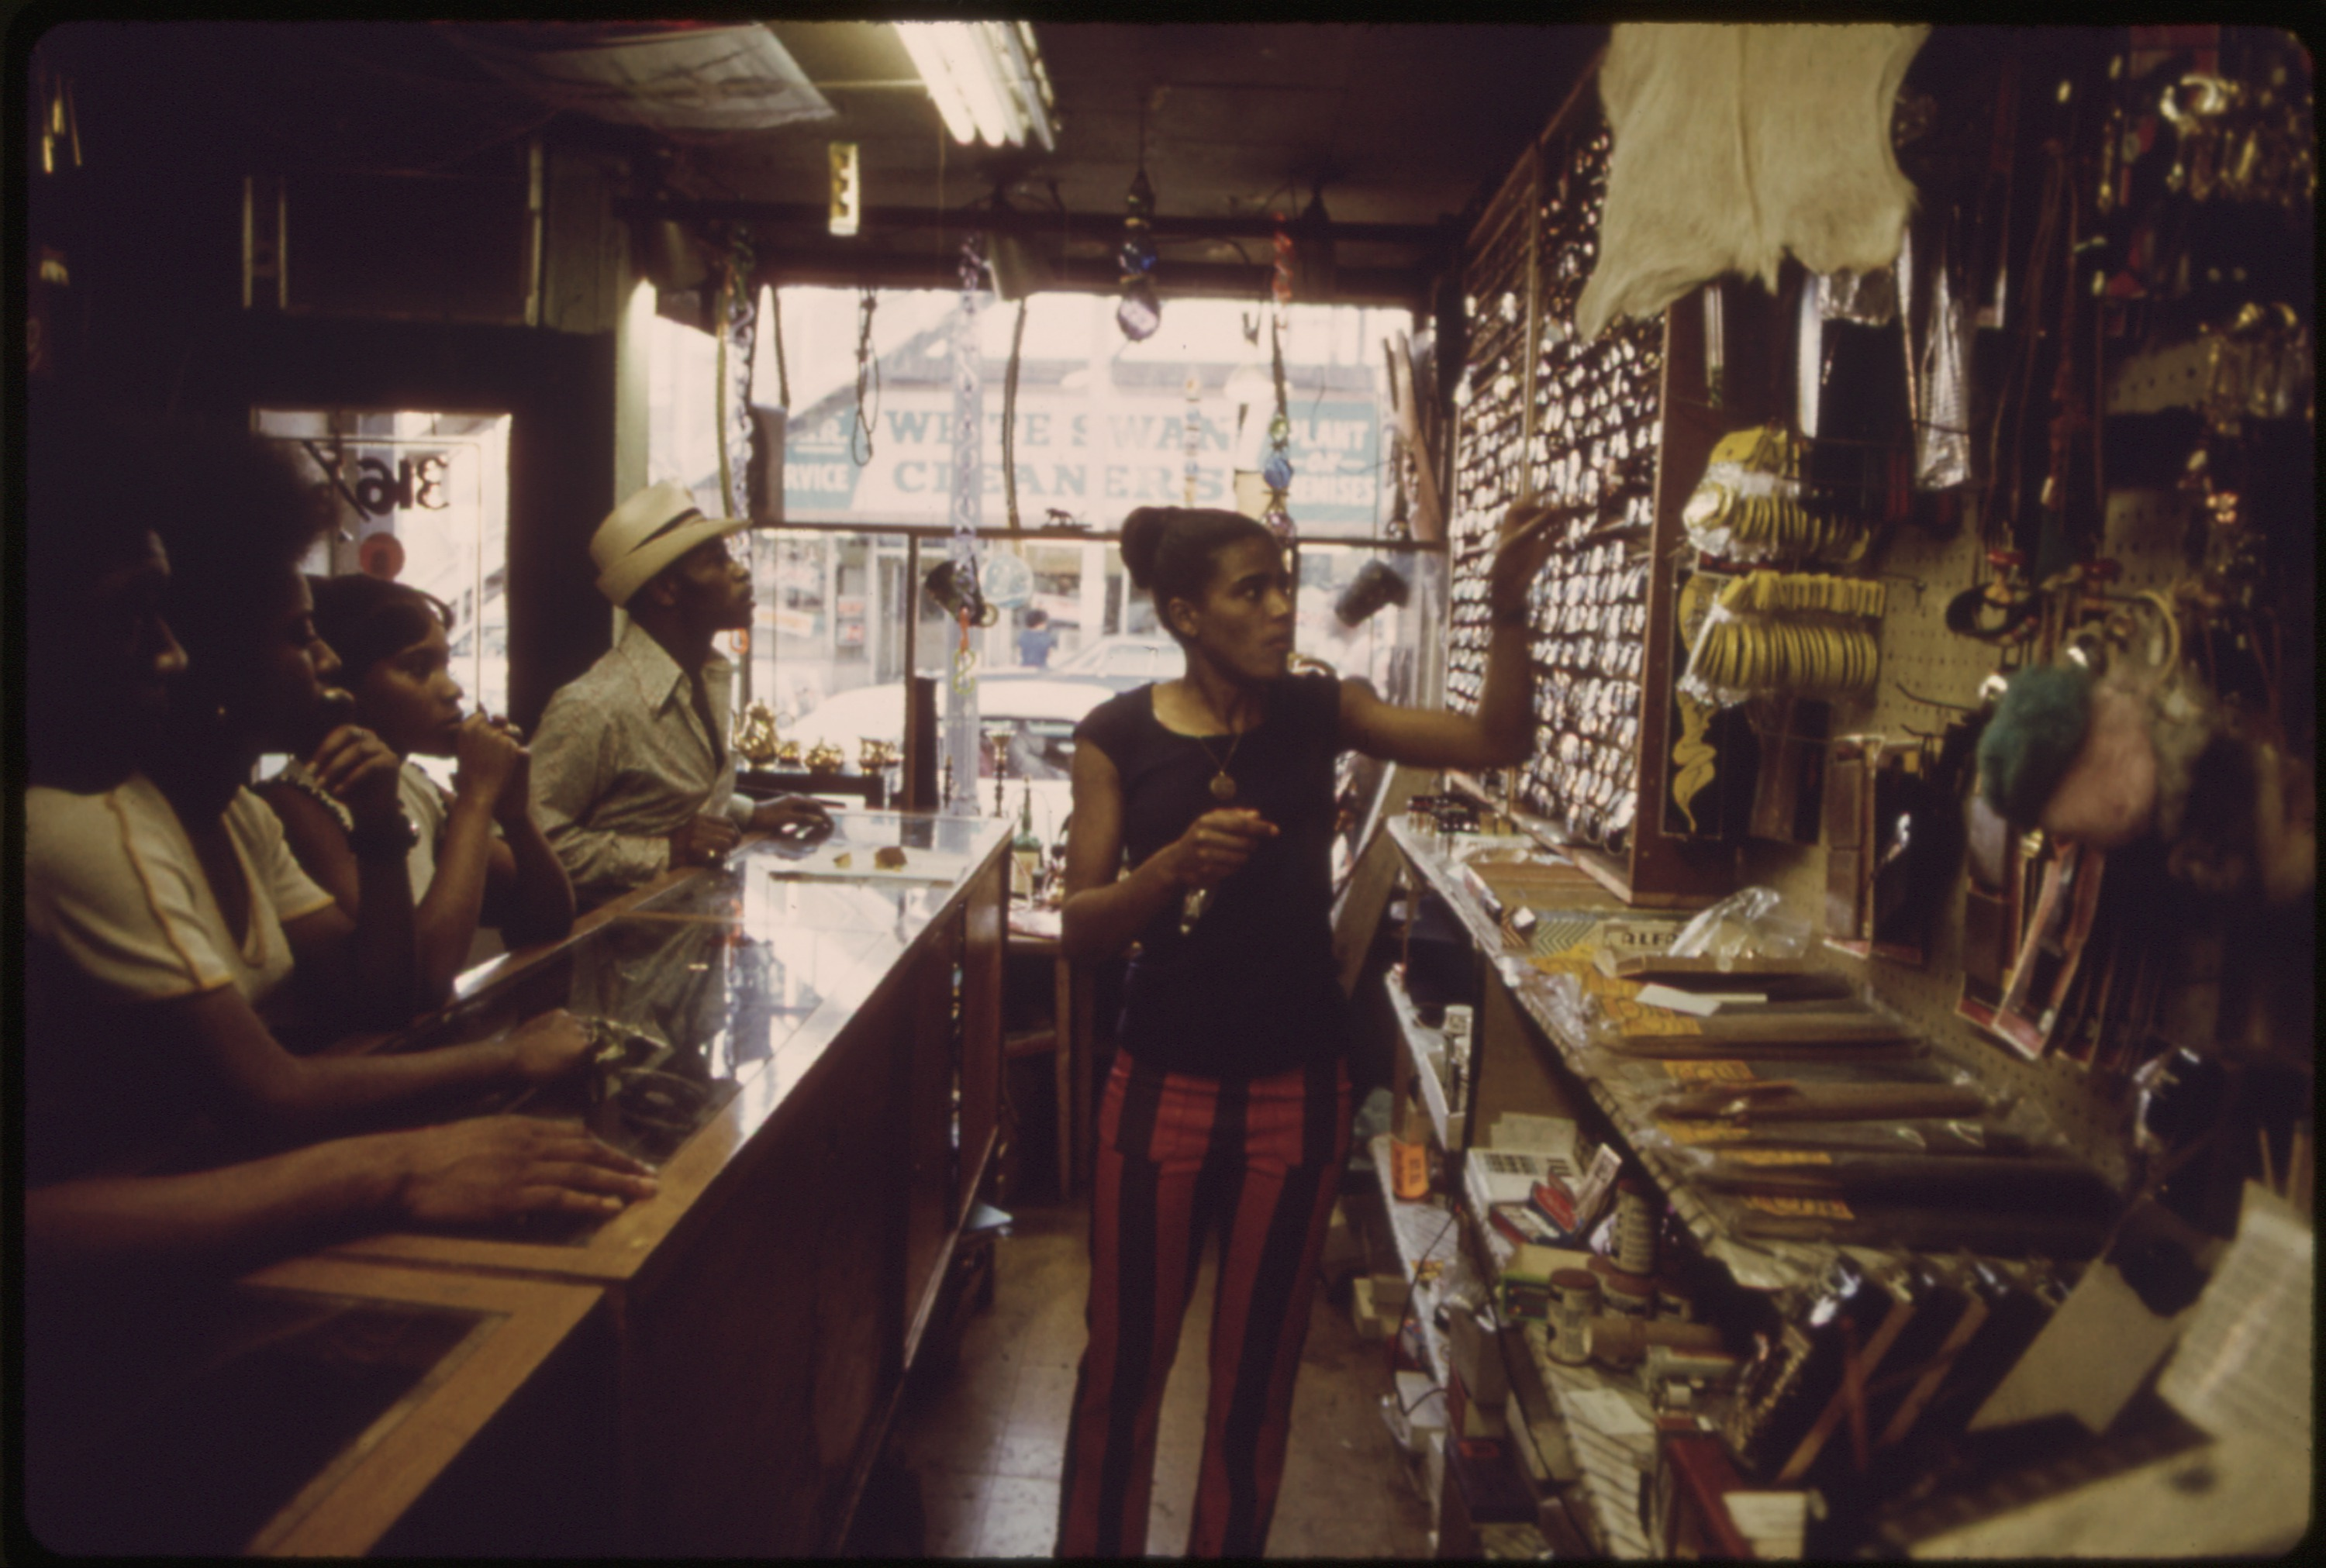 File:BLACK OWNED BUSINESS ON CHICAGO'S SOUTH SIDE. THE CITY IS ...